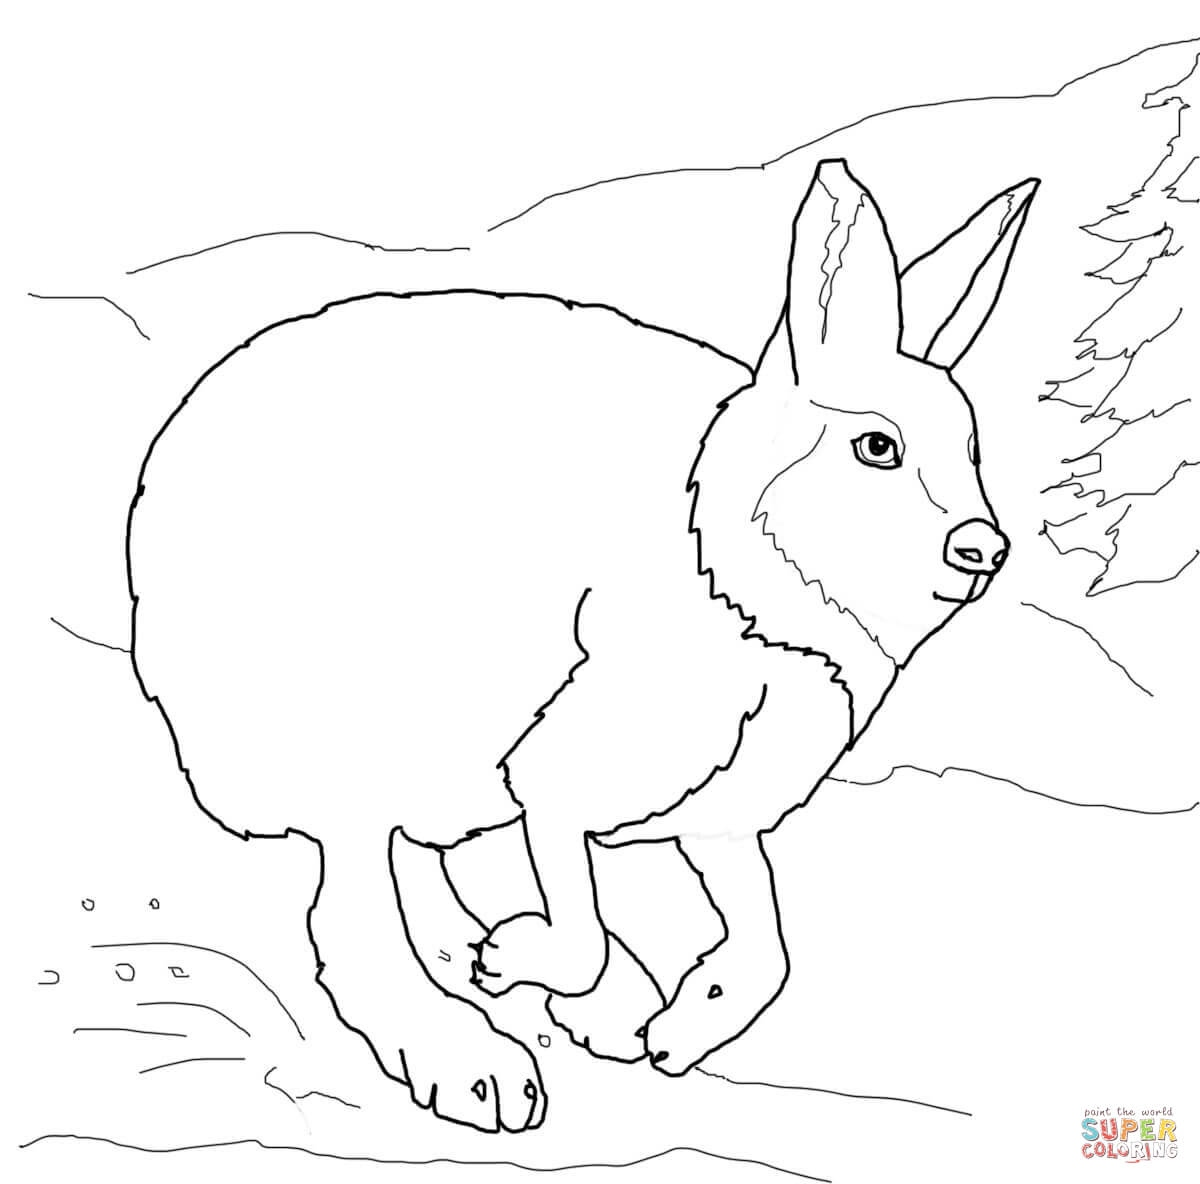 arctic animals coloring pages for preschoolers at the zoo arctic animals a walrus illustration for pages animals arctic coloring for preschoolers